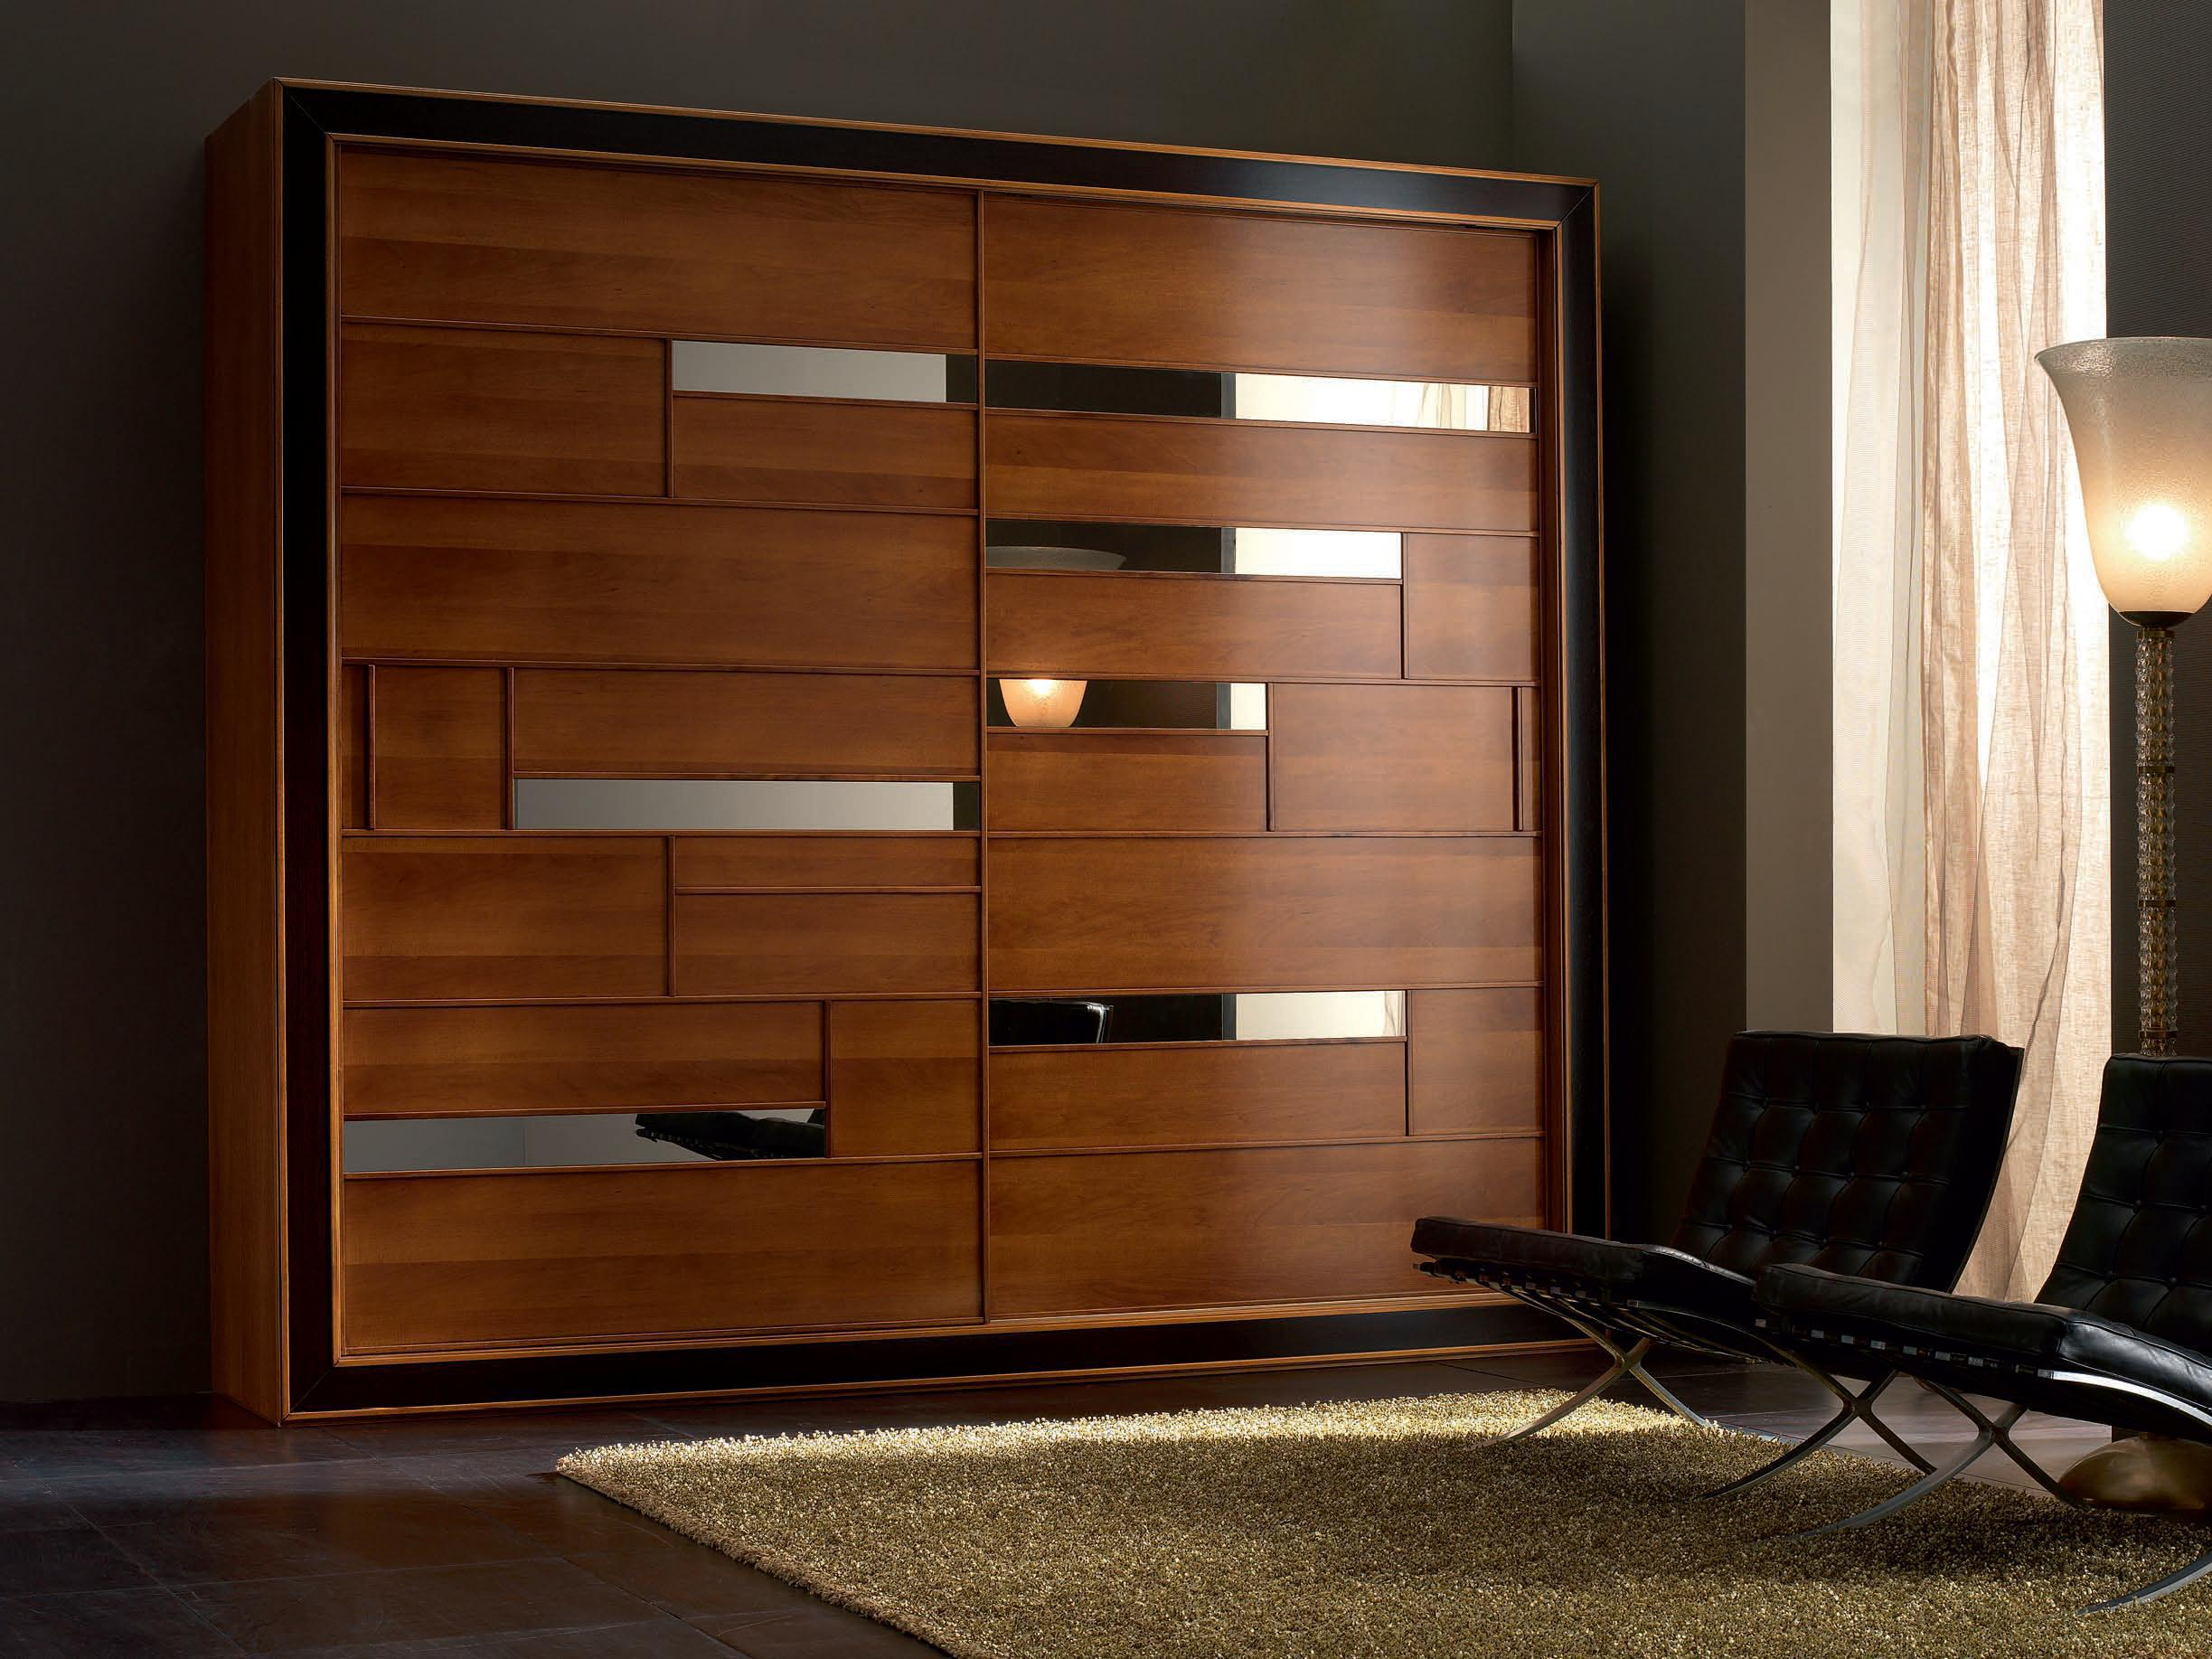 Image of: Wooden Wardrobe Cabinet